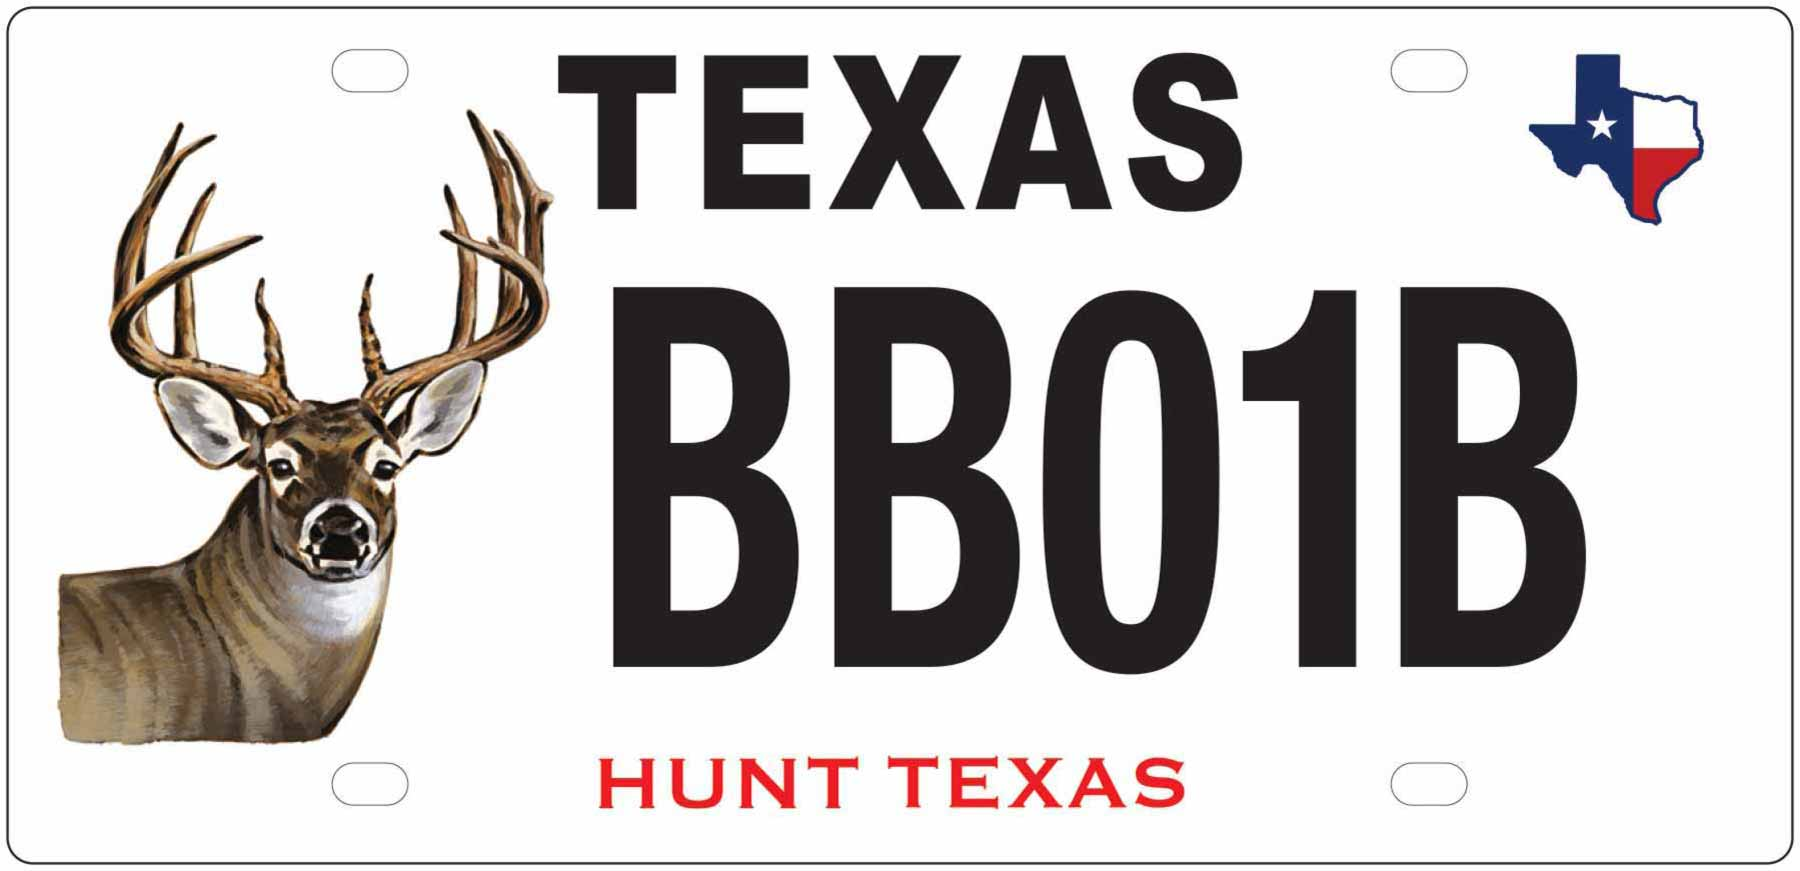 Texas Car License Plate Cost